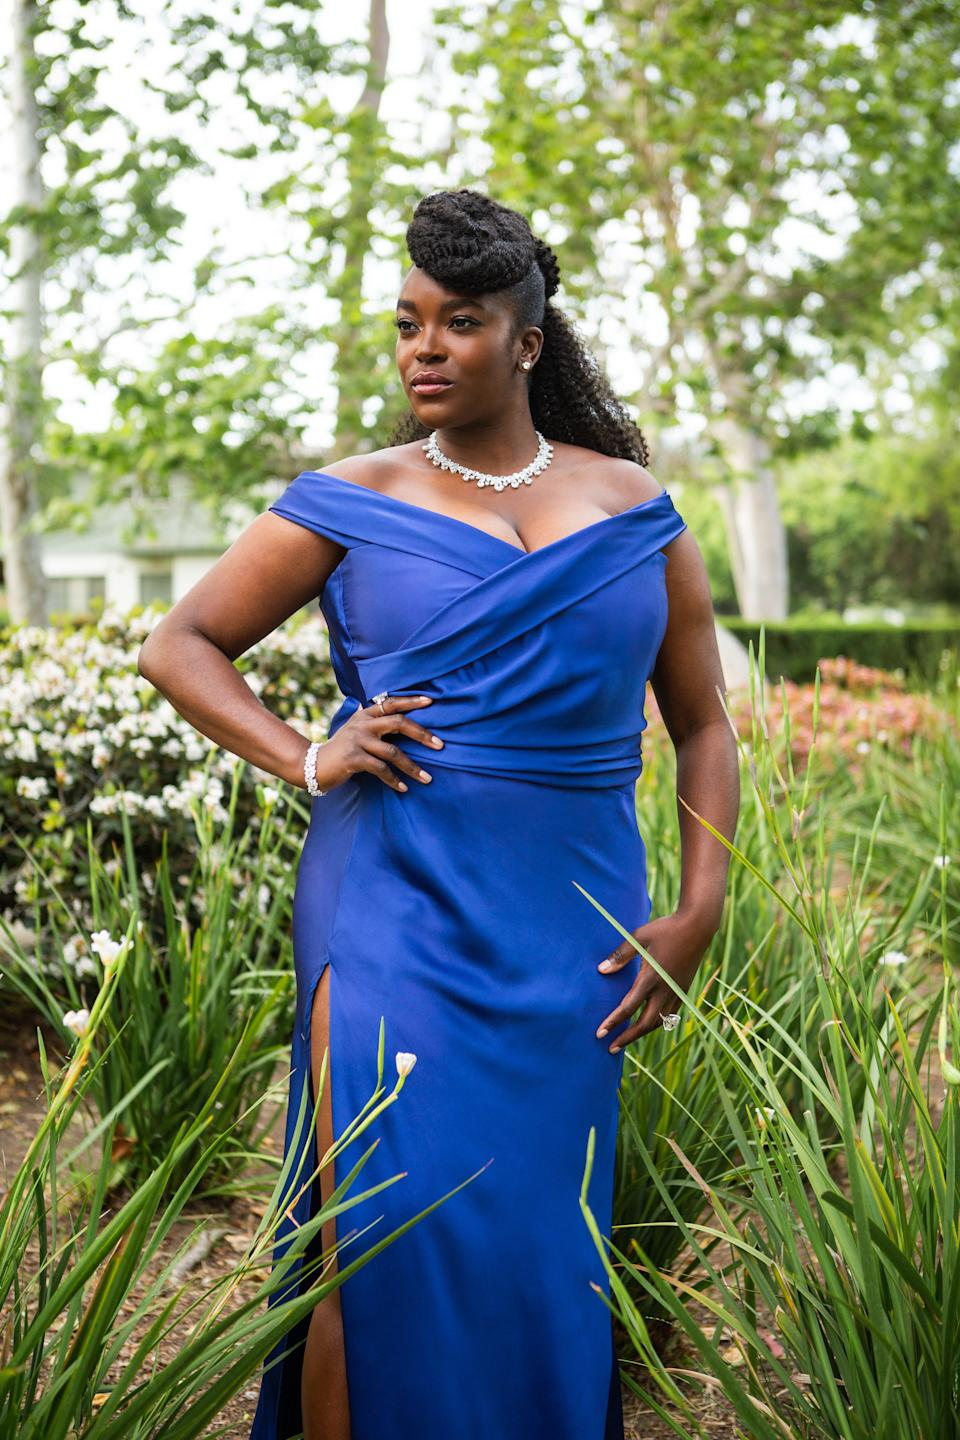 LOS ANGELES, CALIFORNIA - APRIL 11: Actress Wunmi Mosaku nominated for best actress in a leading role for